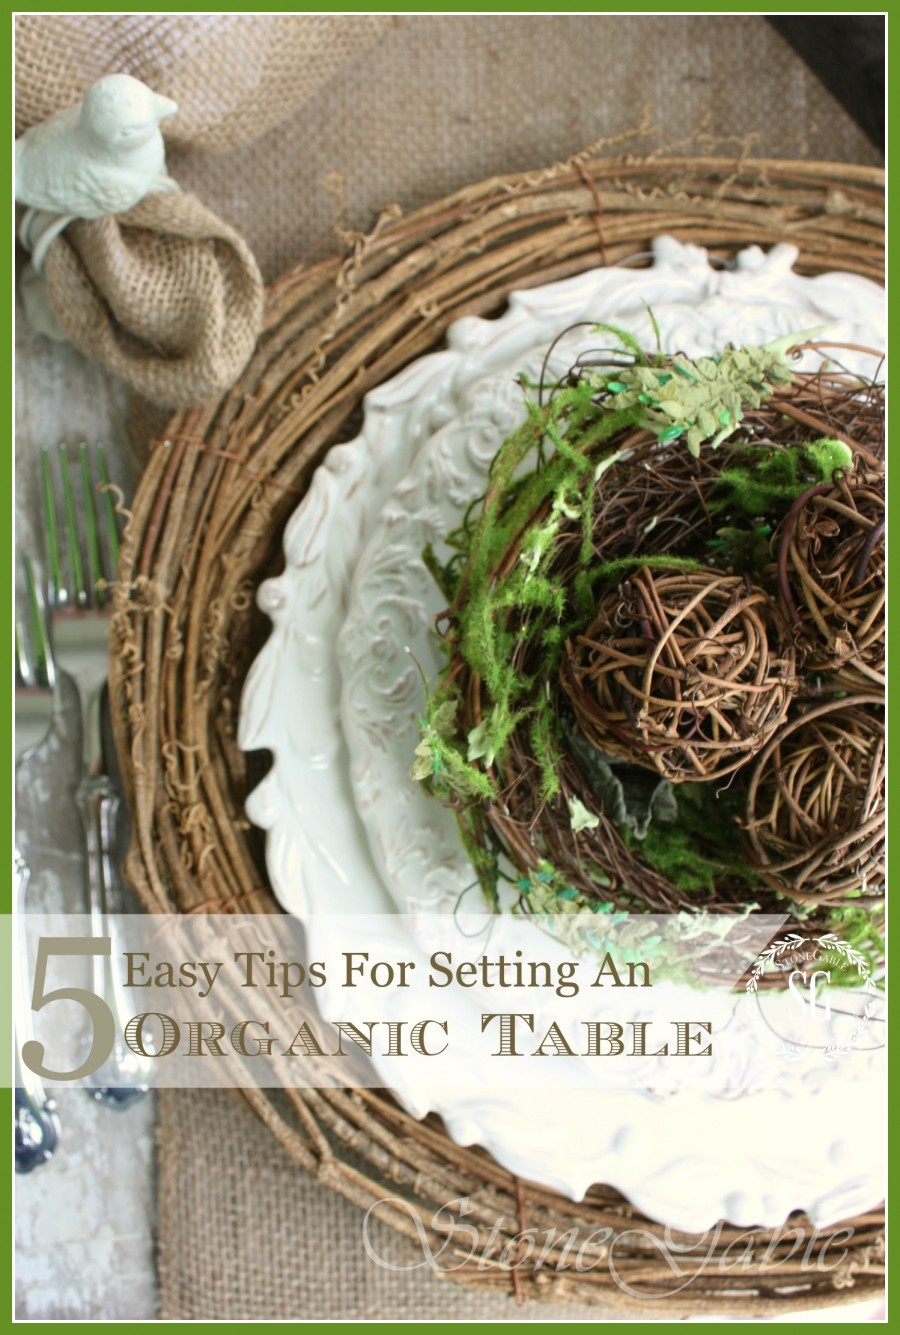 5 EASY TIPS FOR SETTING AN ORGANIC TABLE